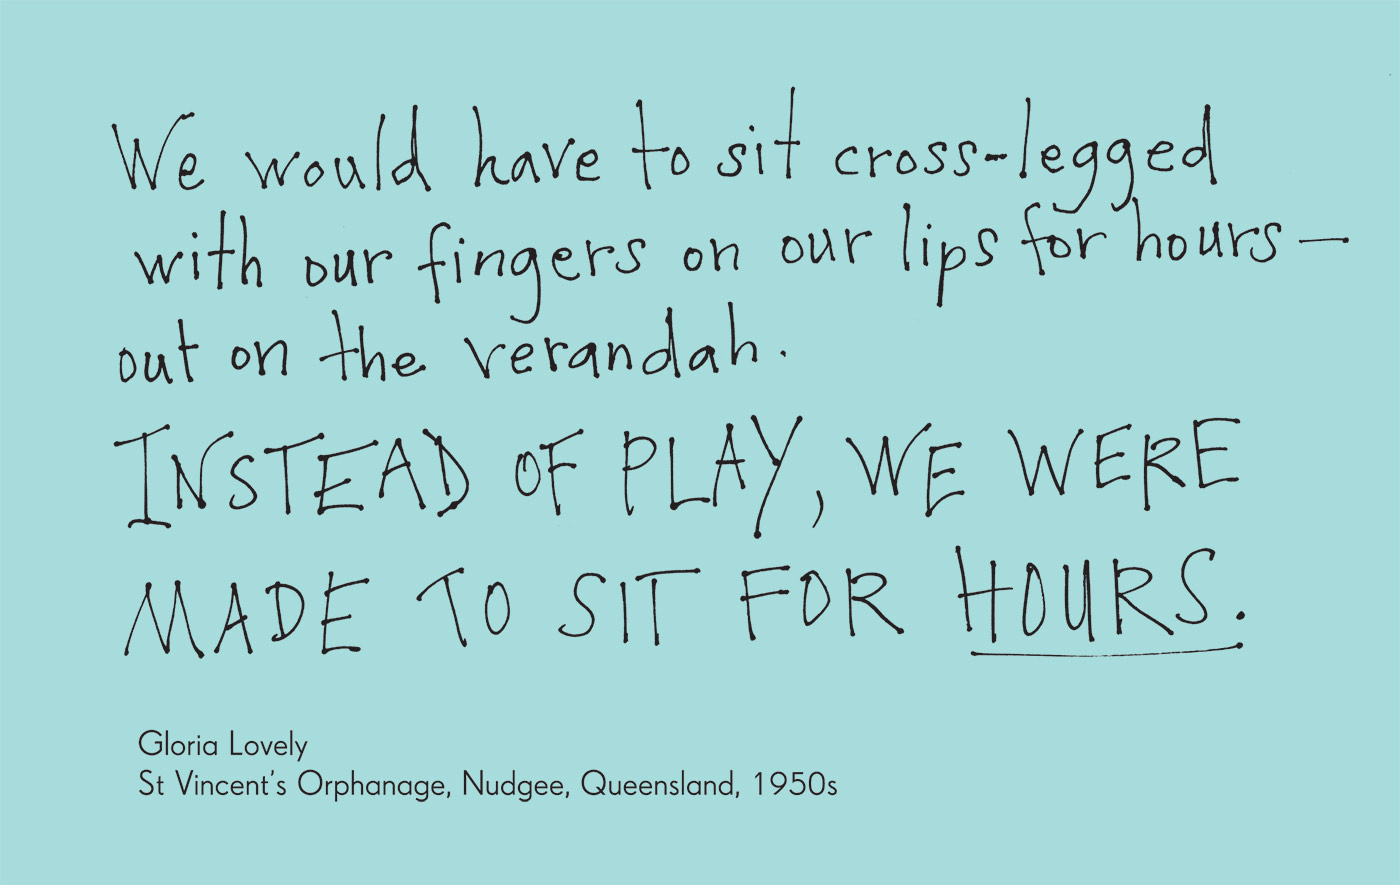 Exhibition graphic panel that reads: 'We would have to sit cross-legged with our fingers on our lips for hours — out on the verandah. Instead of play, we were made to sit for hours', attributed to 'Gloria Lovely, St Vincent's Orphanage, Nudgee, Queensland, 1950s'.